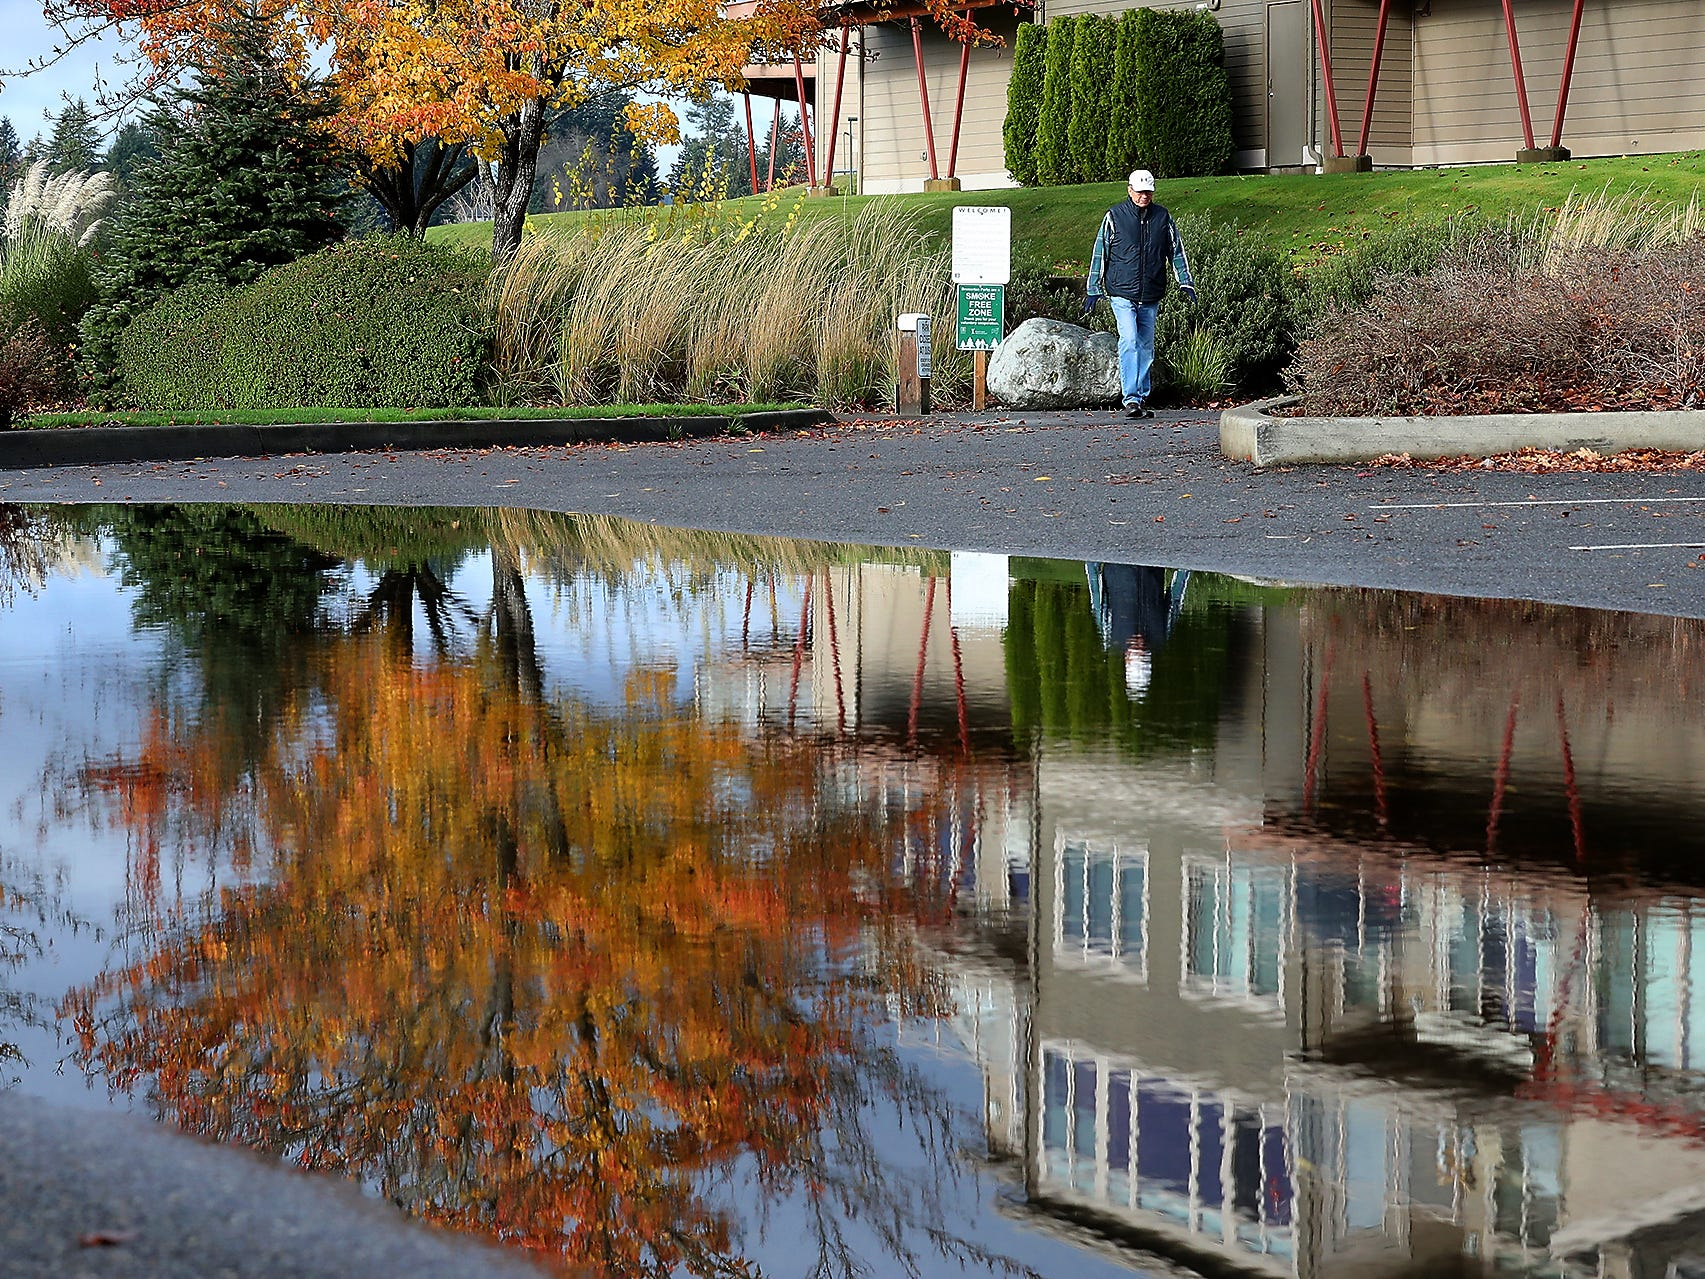 A walker skirts a large puddle reflecting the late Fall season colors at Lions Park in Bremerton on Tuesday, November 27, 2018.